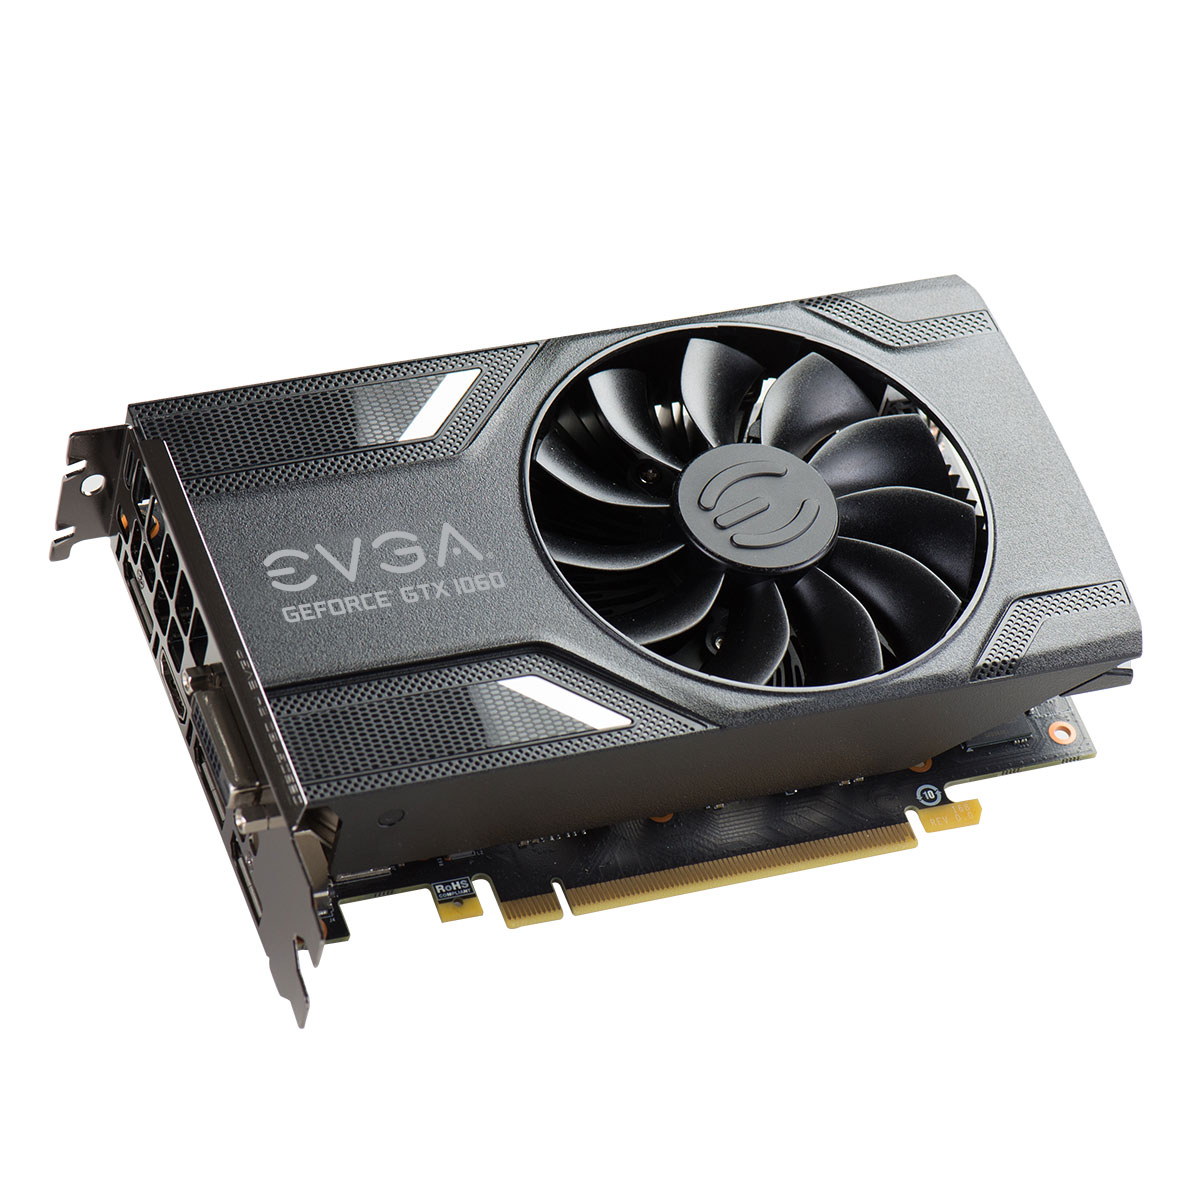 EVGA 06G-P4-6163-KR GeForce GTX 1060 SC GAMING ACX 2.0 (Single Fan) 6GB GDDR5 DX12 OSD Support (PXOC) Video Card